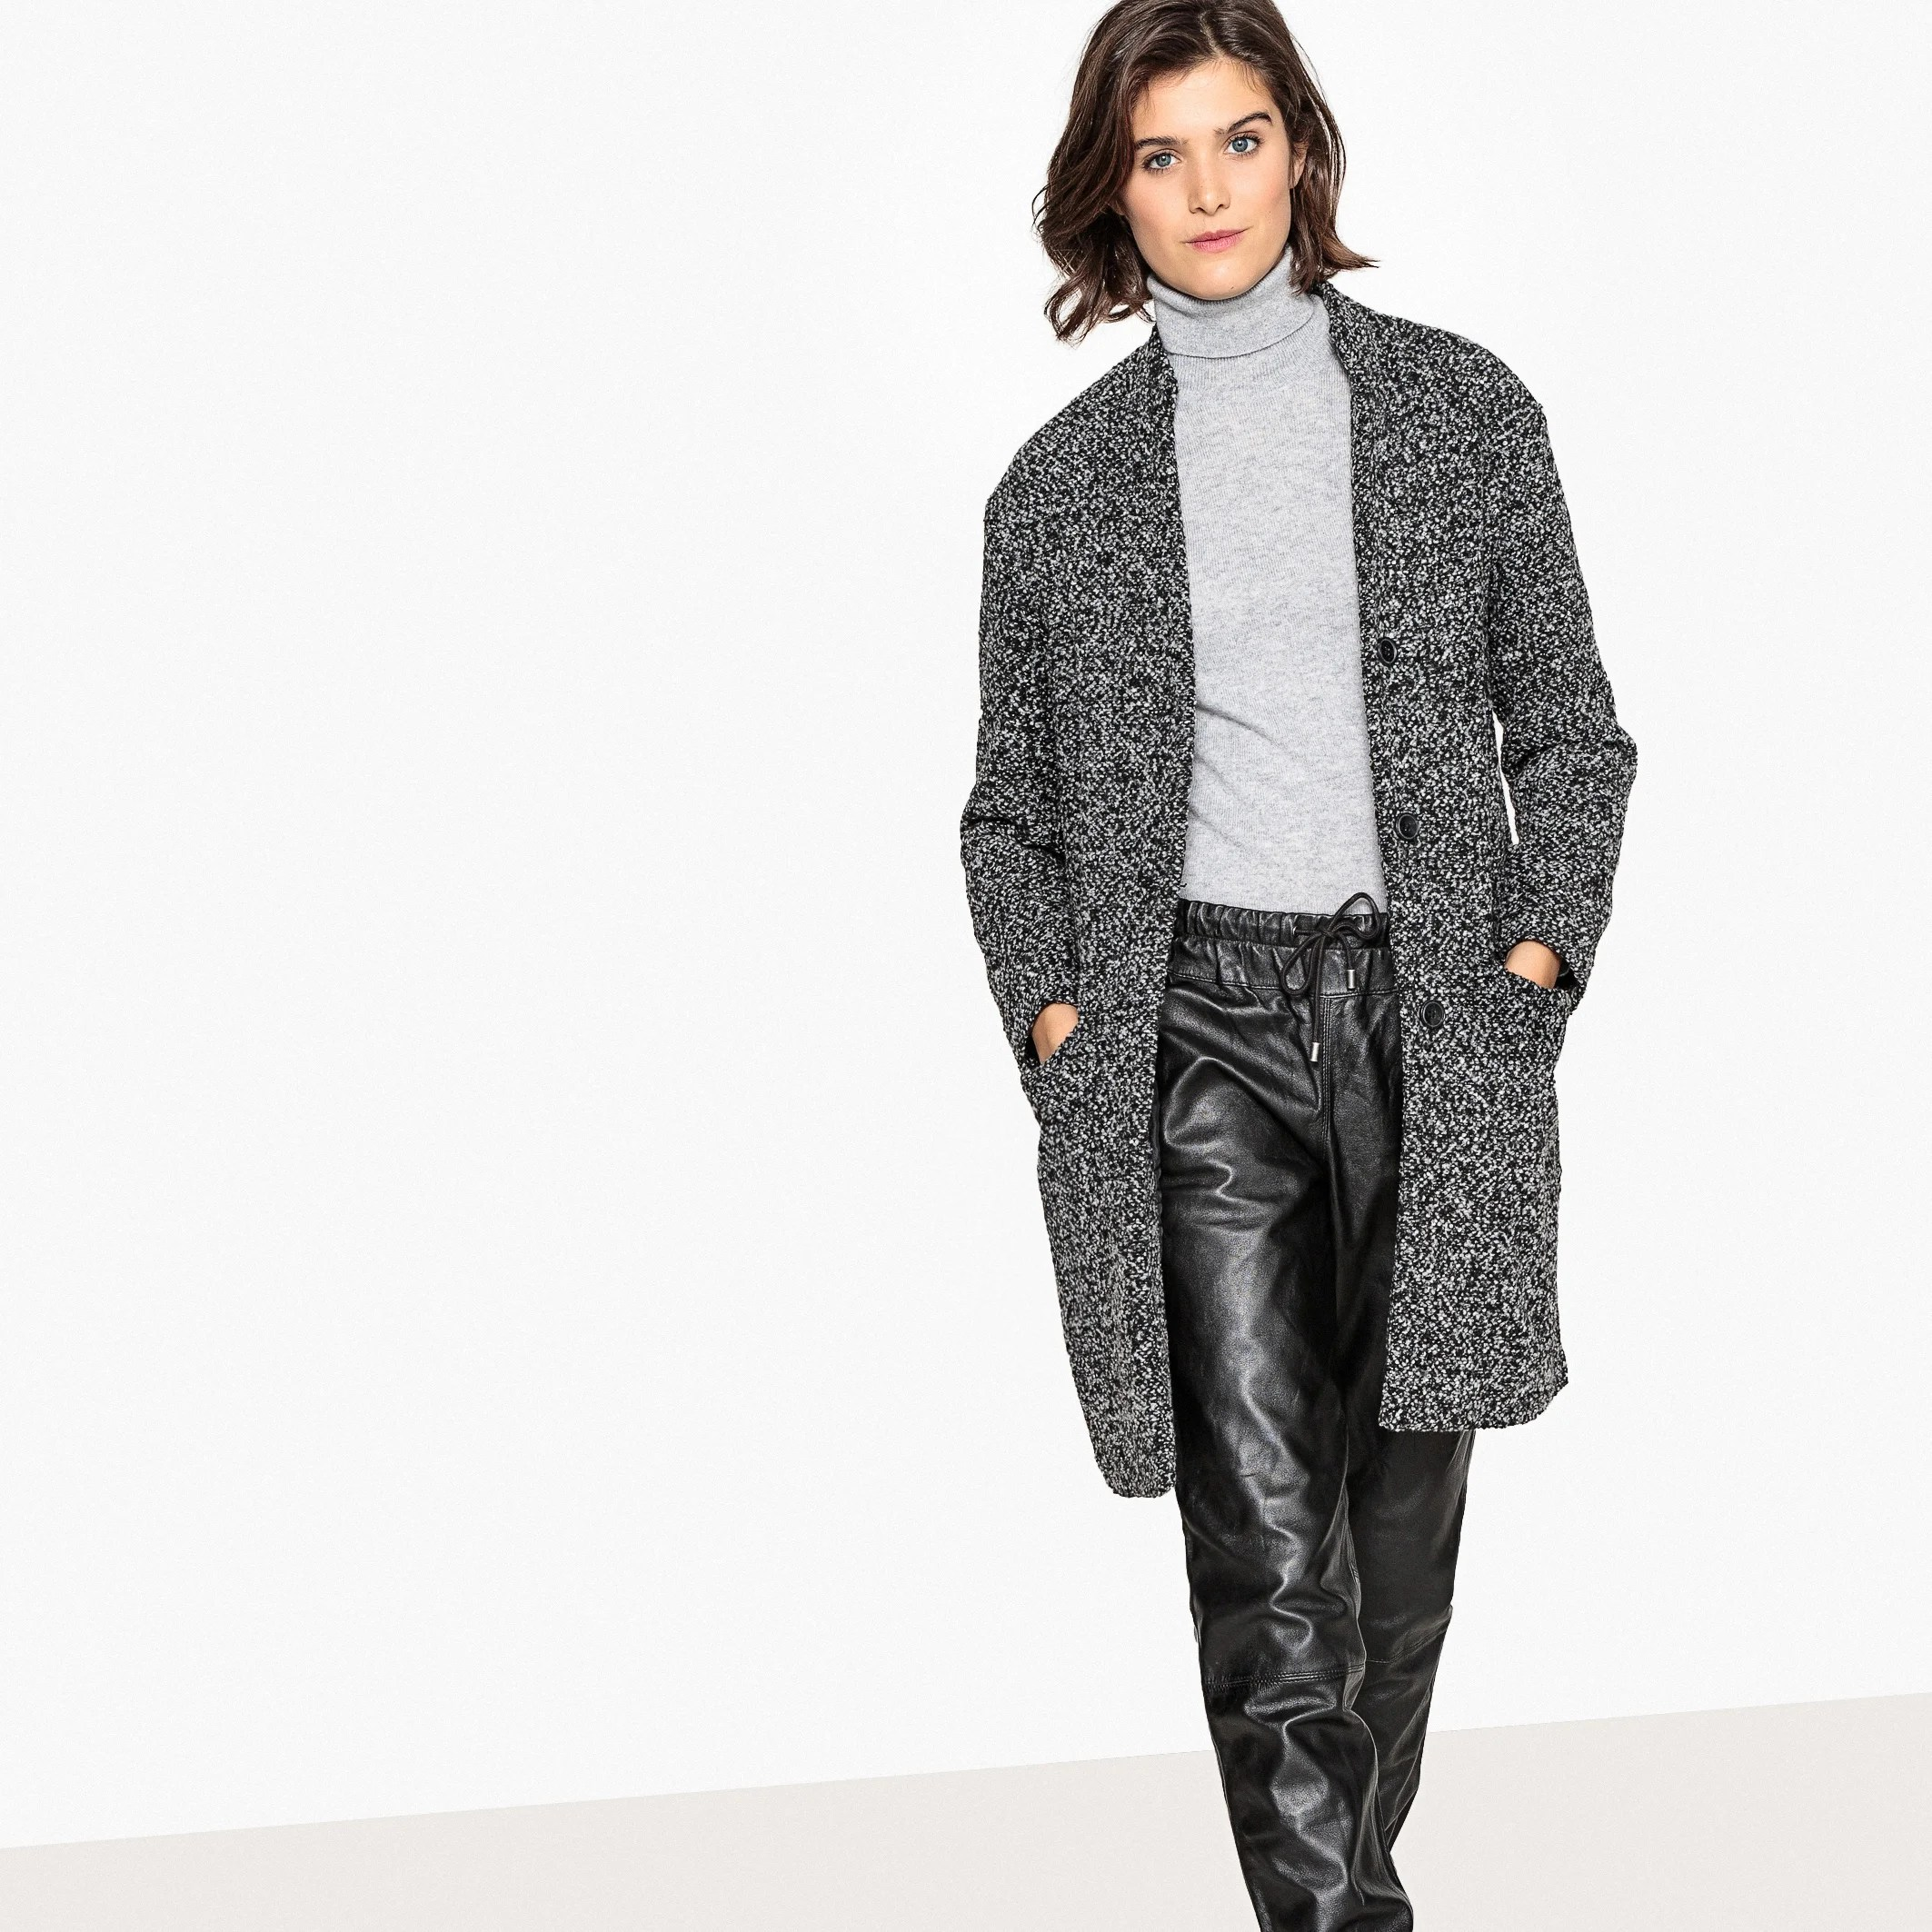 Single Breasted Marl Coat With Pockets Grey La Redoute